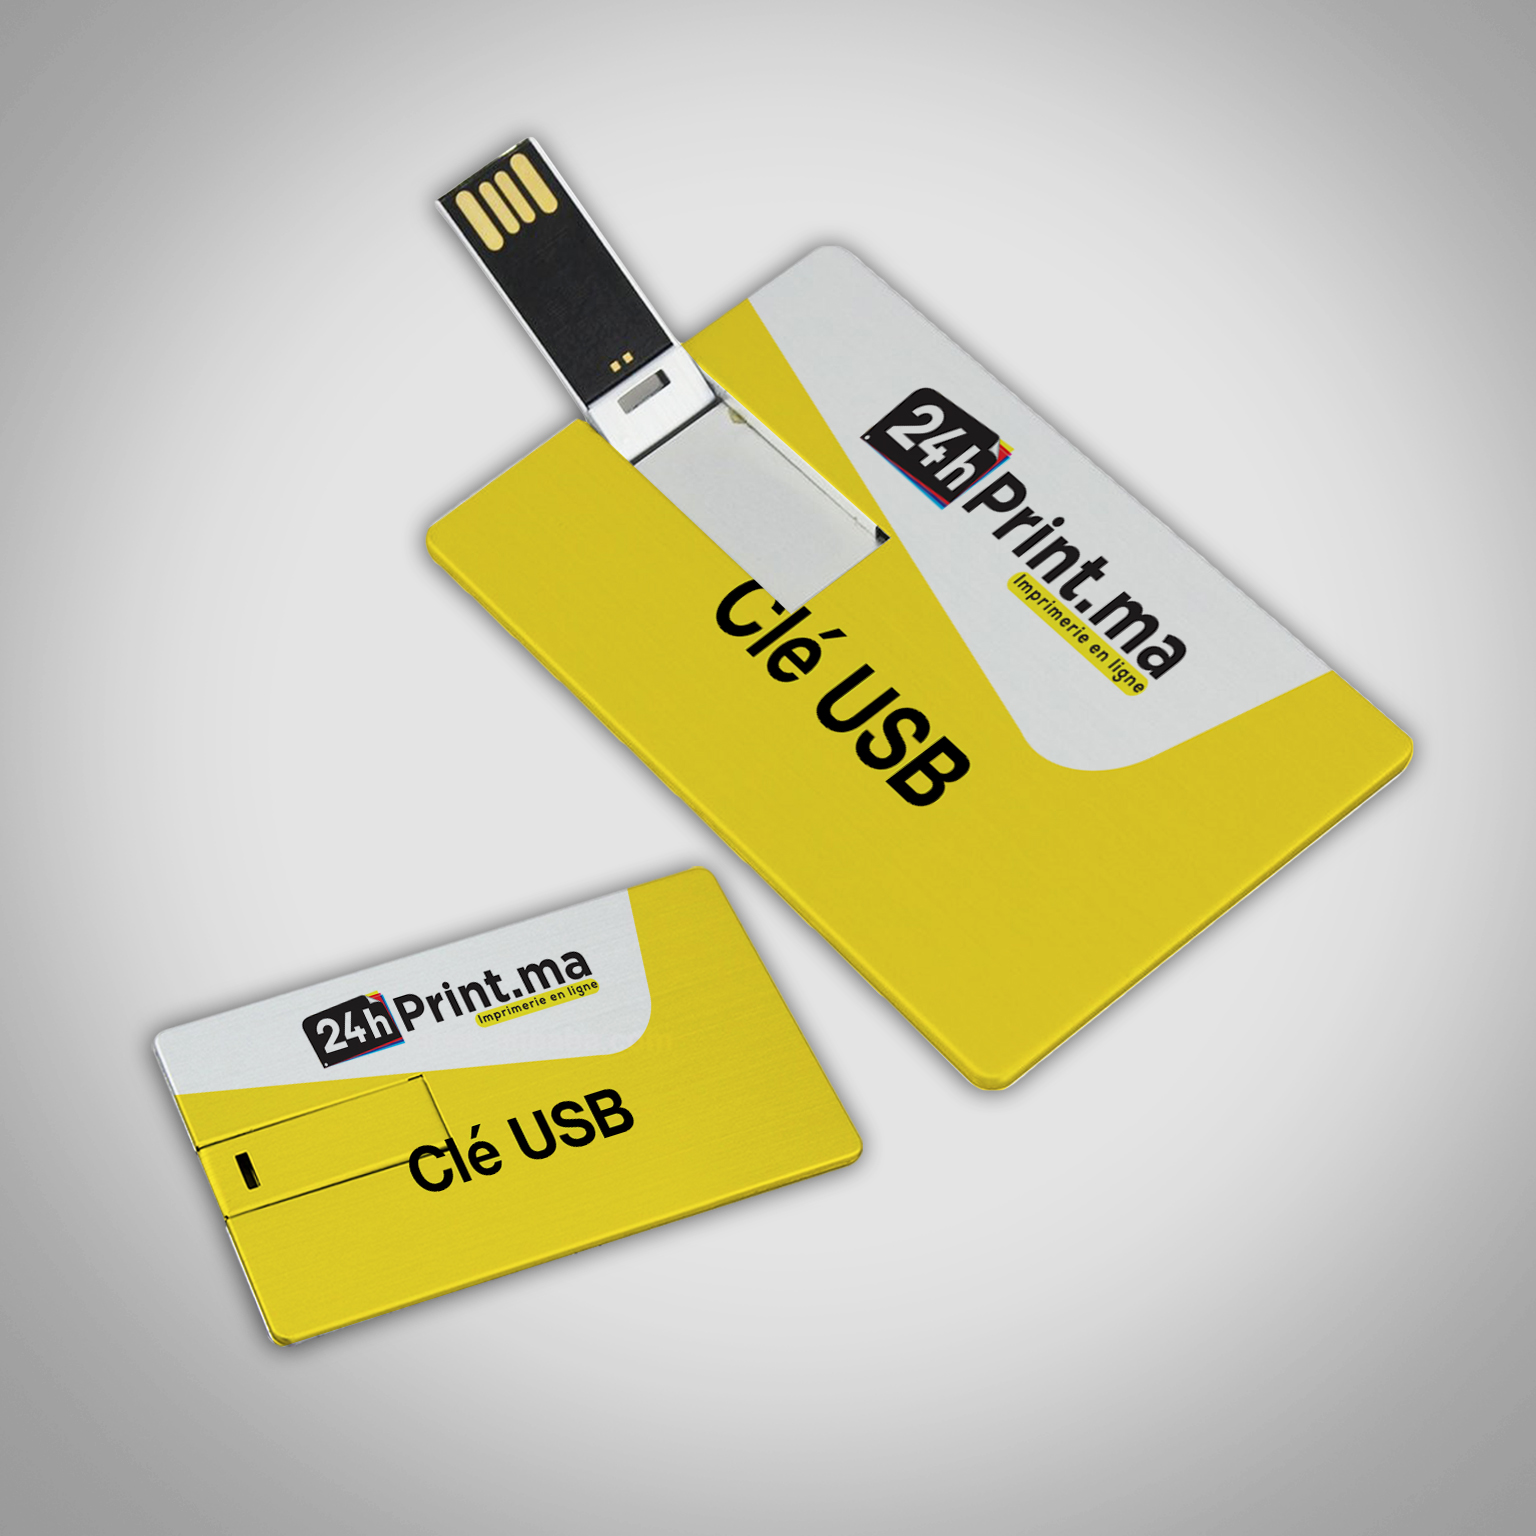 https://www.24hprint.ma/images/products_gallery_images/MOCKP_-_CLe_USB_167.jpg